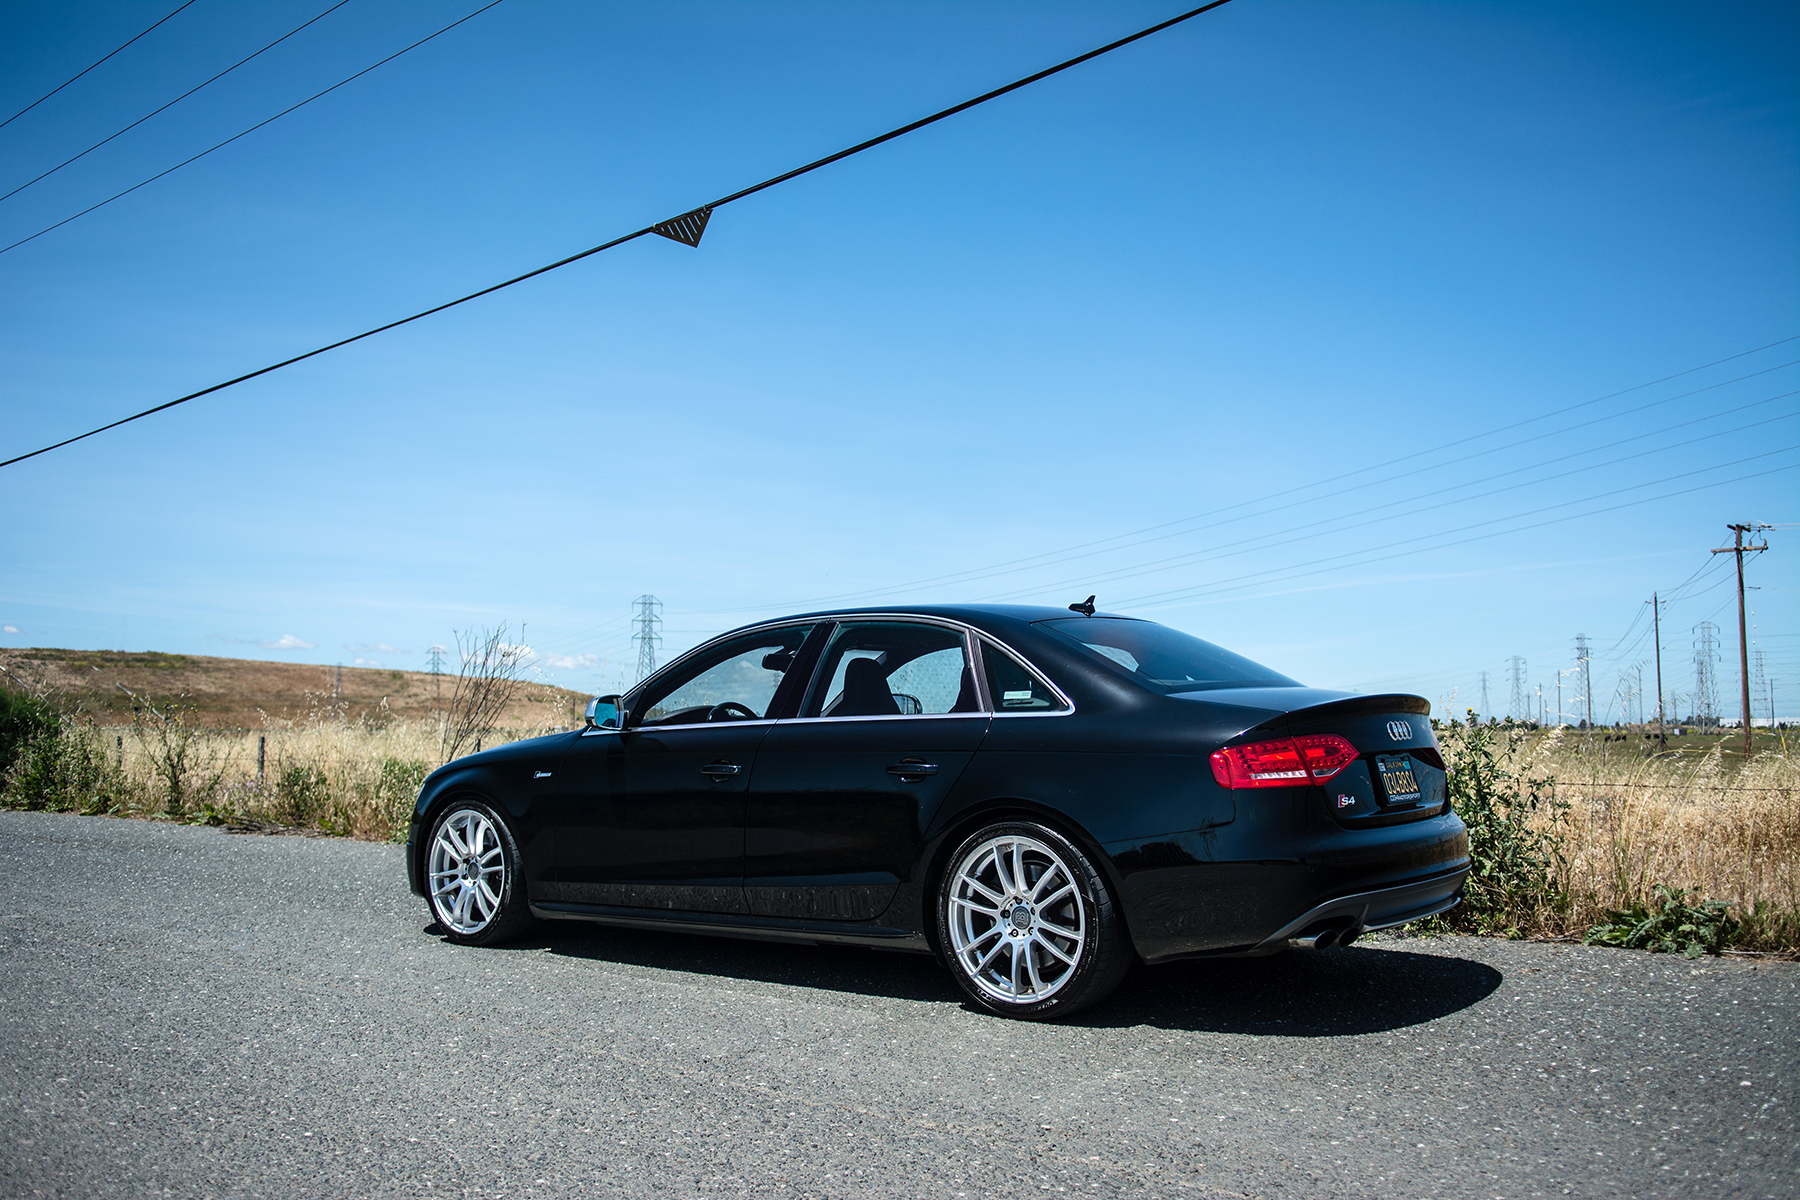 Brilliant Black 2011 Audi S4 Tuned by 034Motorsport